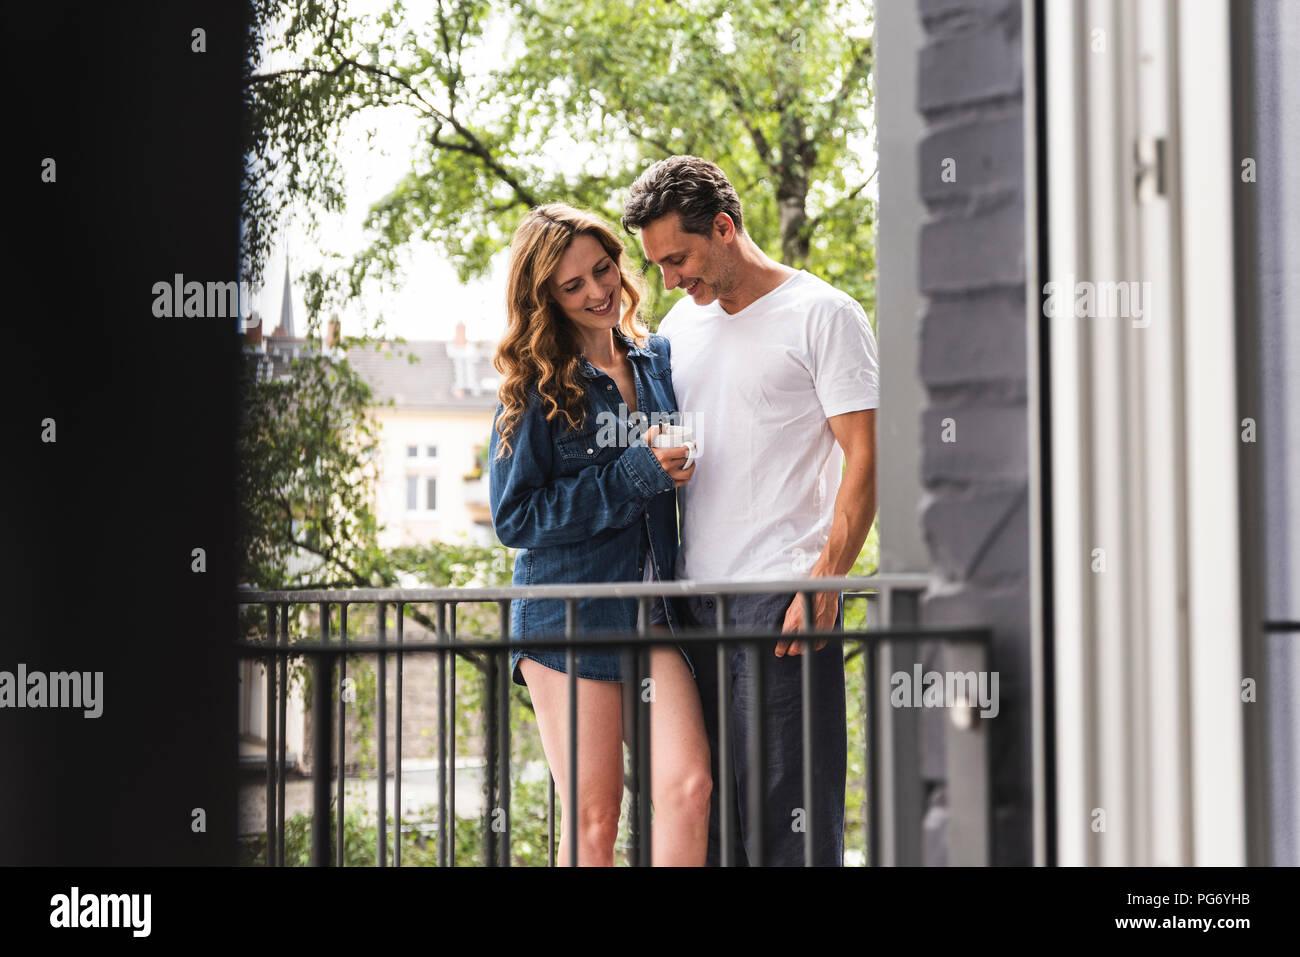 Smiling couple in nightwear with cup of coffee standing on balcony - Stock Image